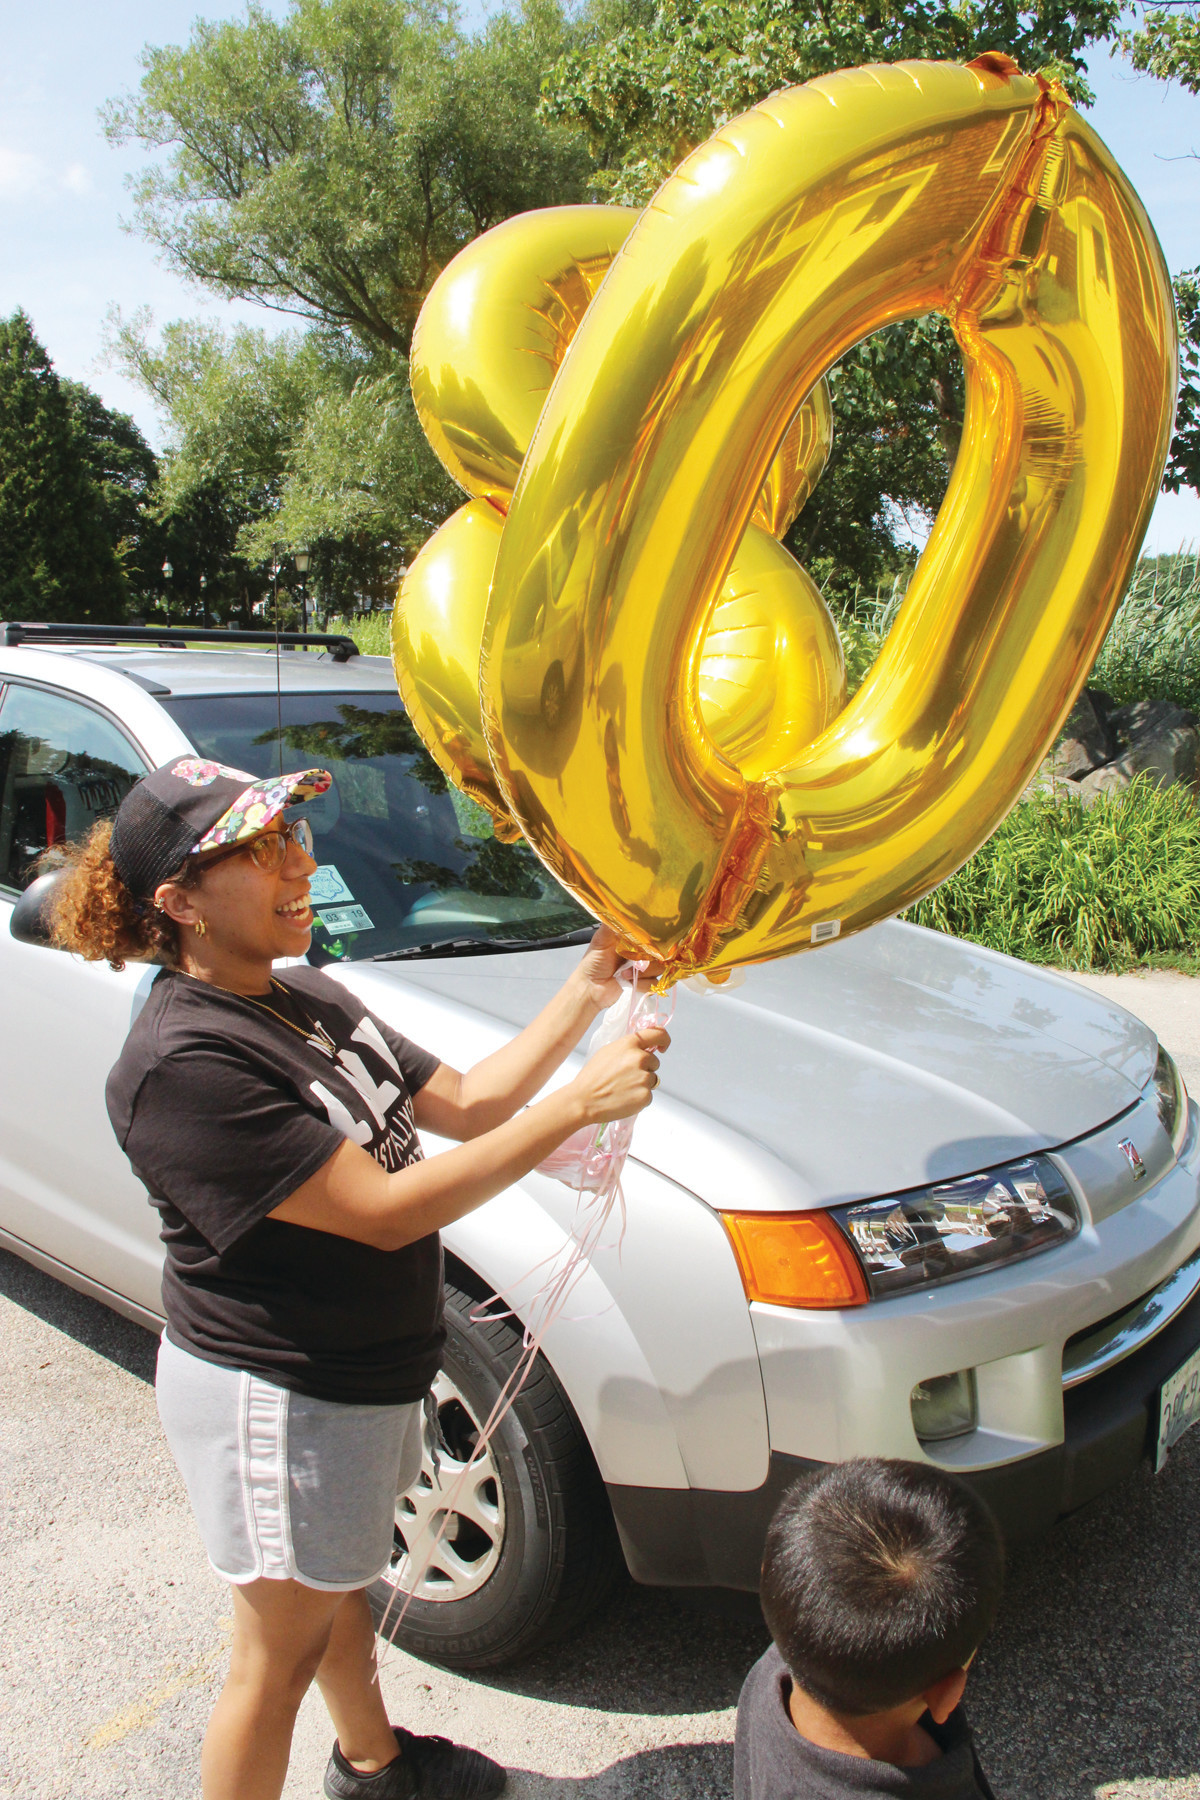 THE BIG 80: Massiel Garcia brings in balloons for the surprise 80th birthday party for Nereida Serrano held Sunday at the Aspray Boathouse in Pawtuxet.